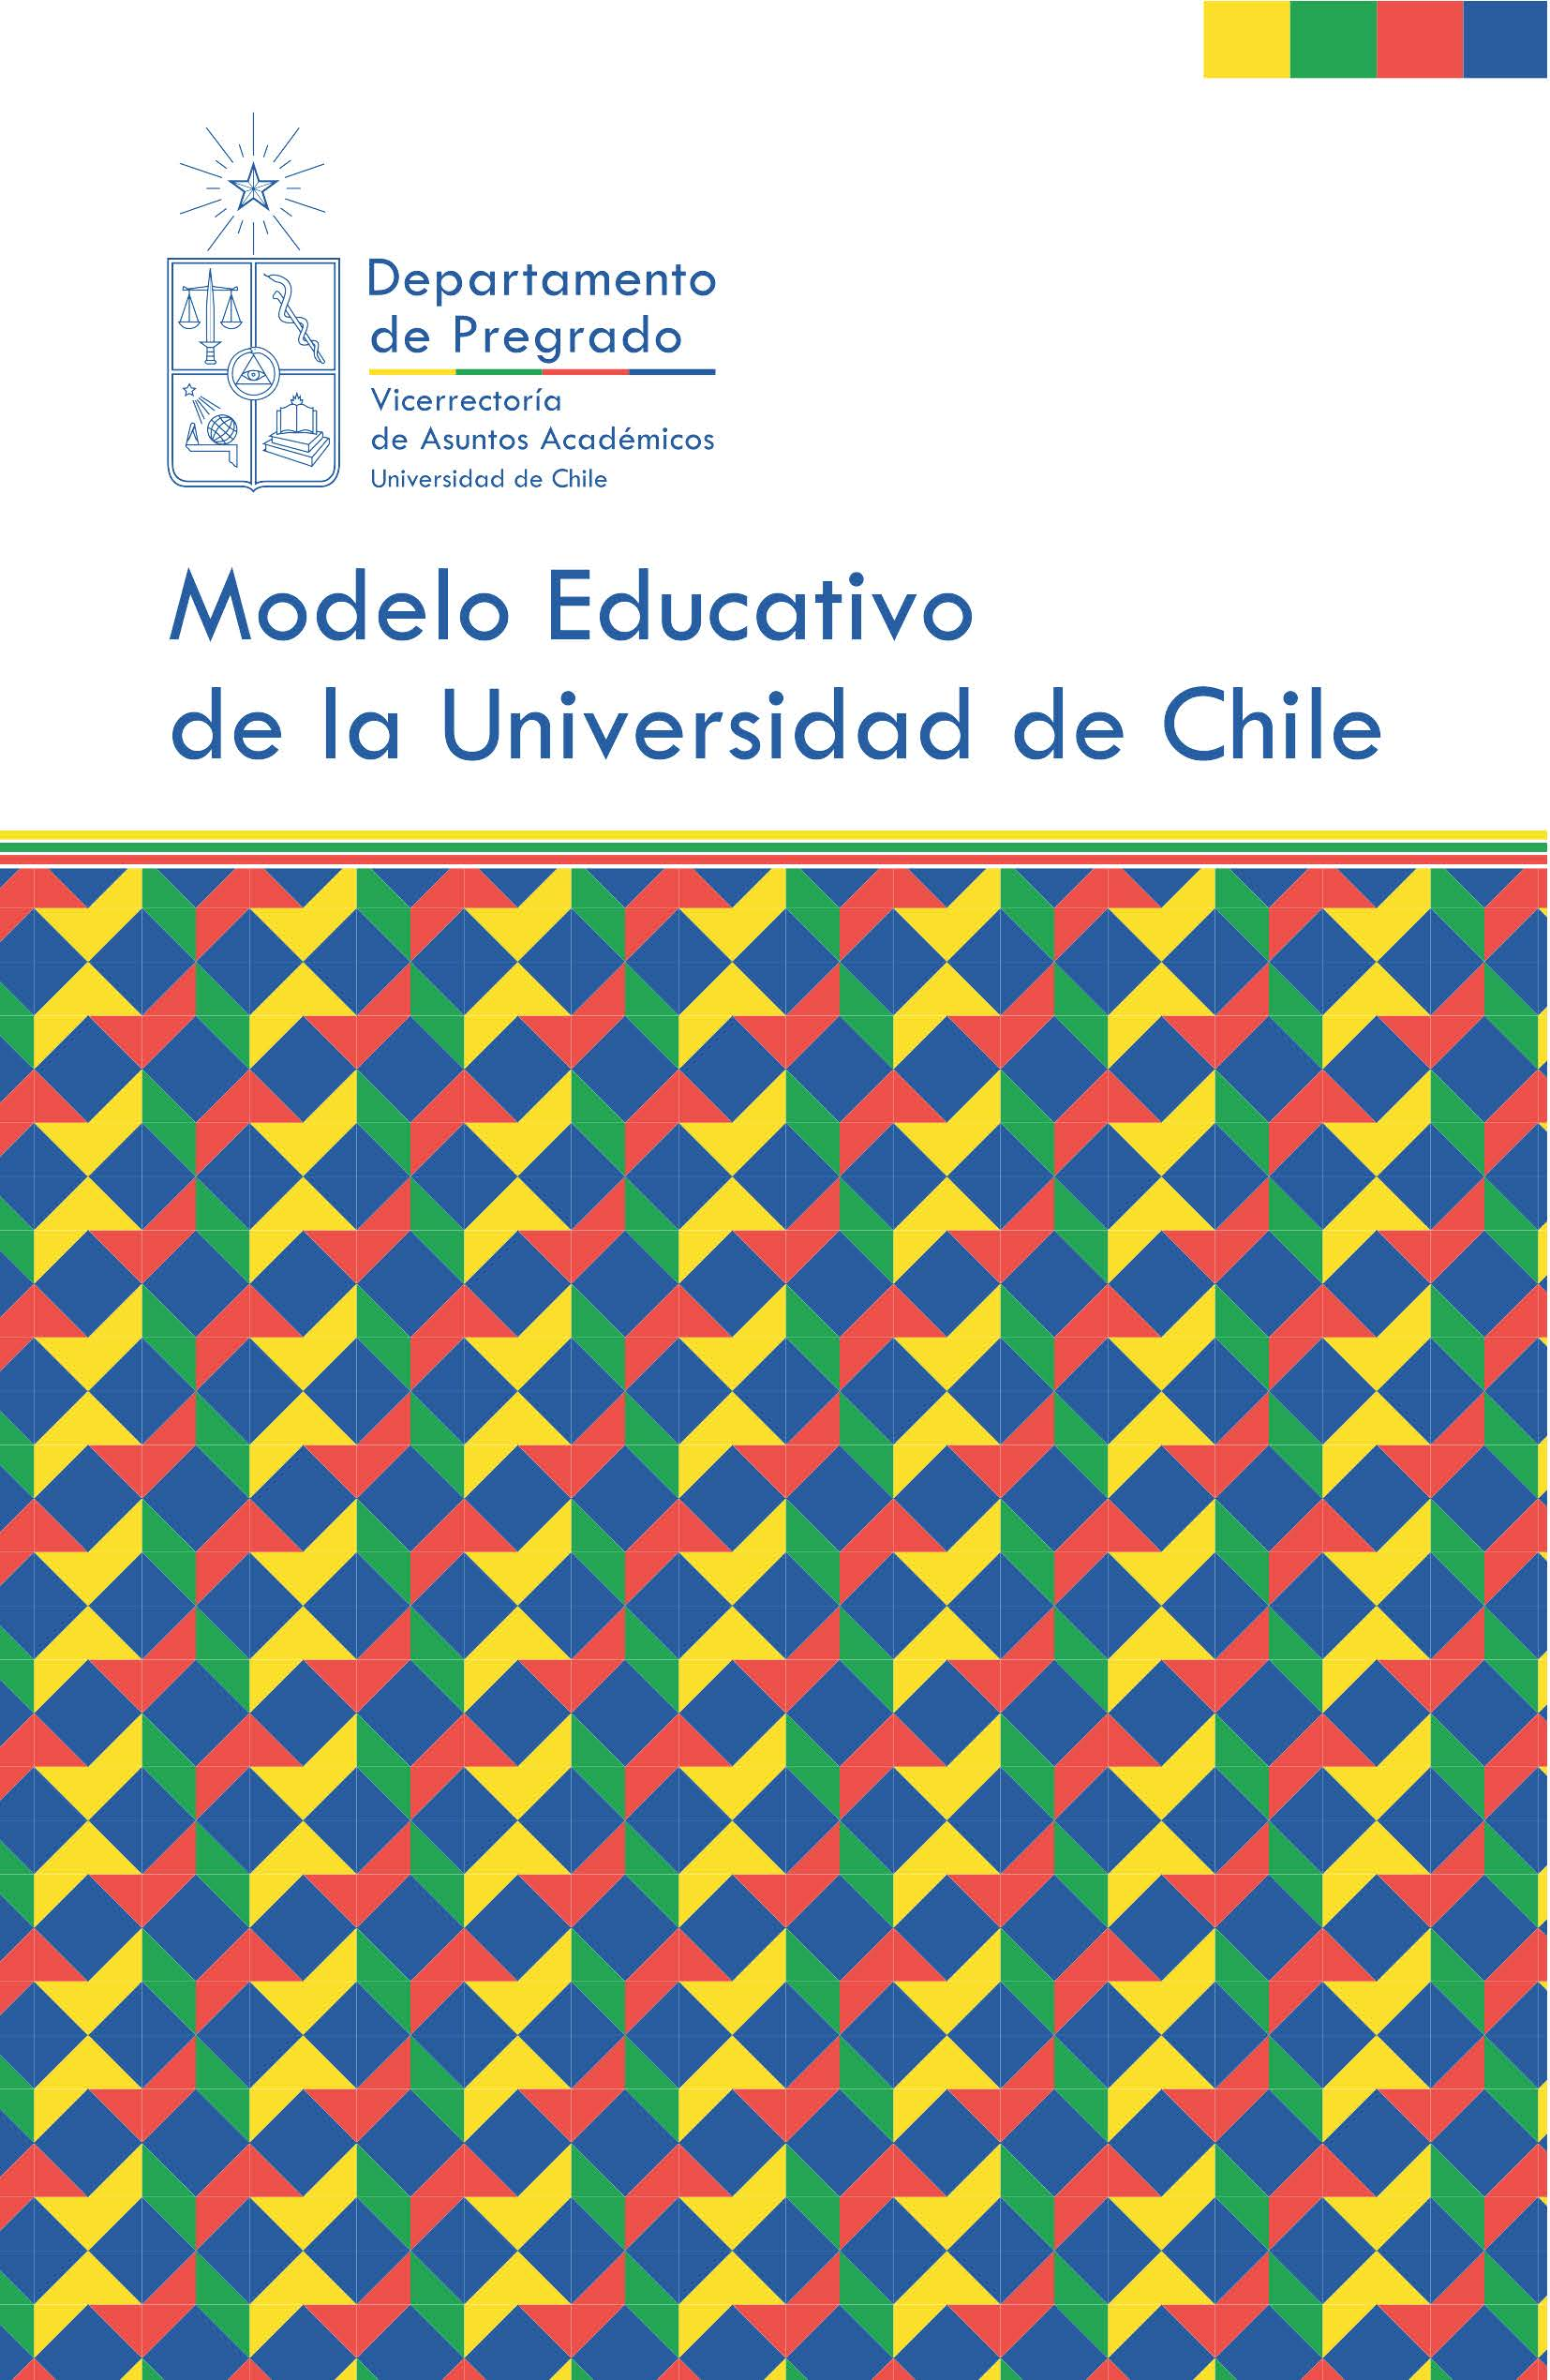 Google Academico Libros De Educacion Modelo Educativo De La Universidad De Chile